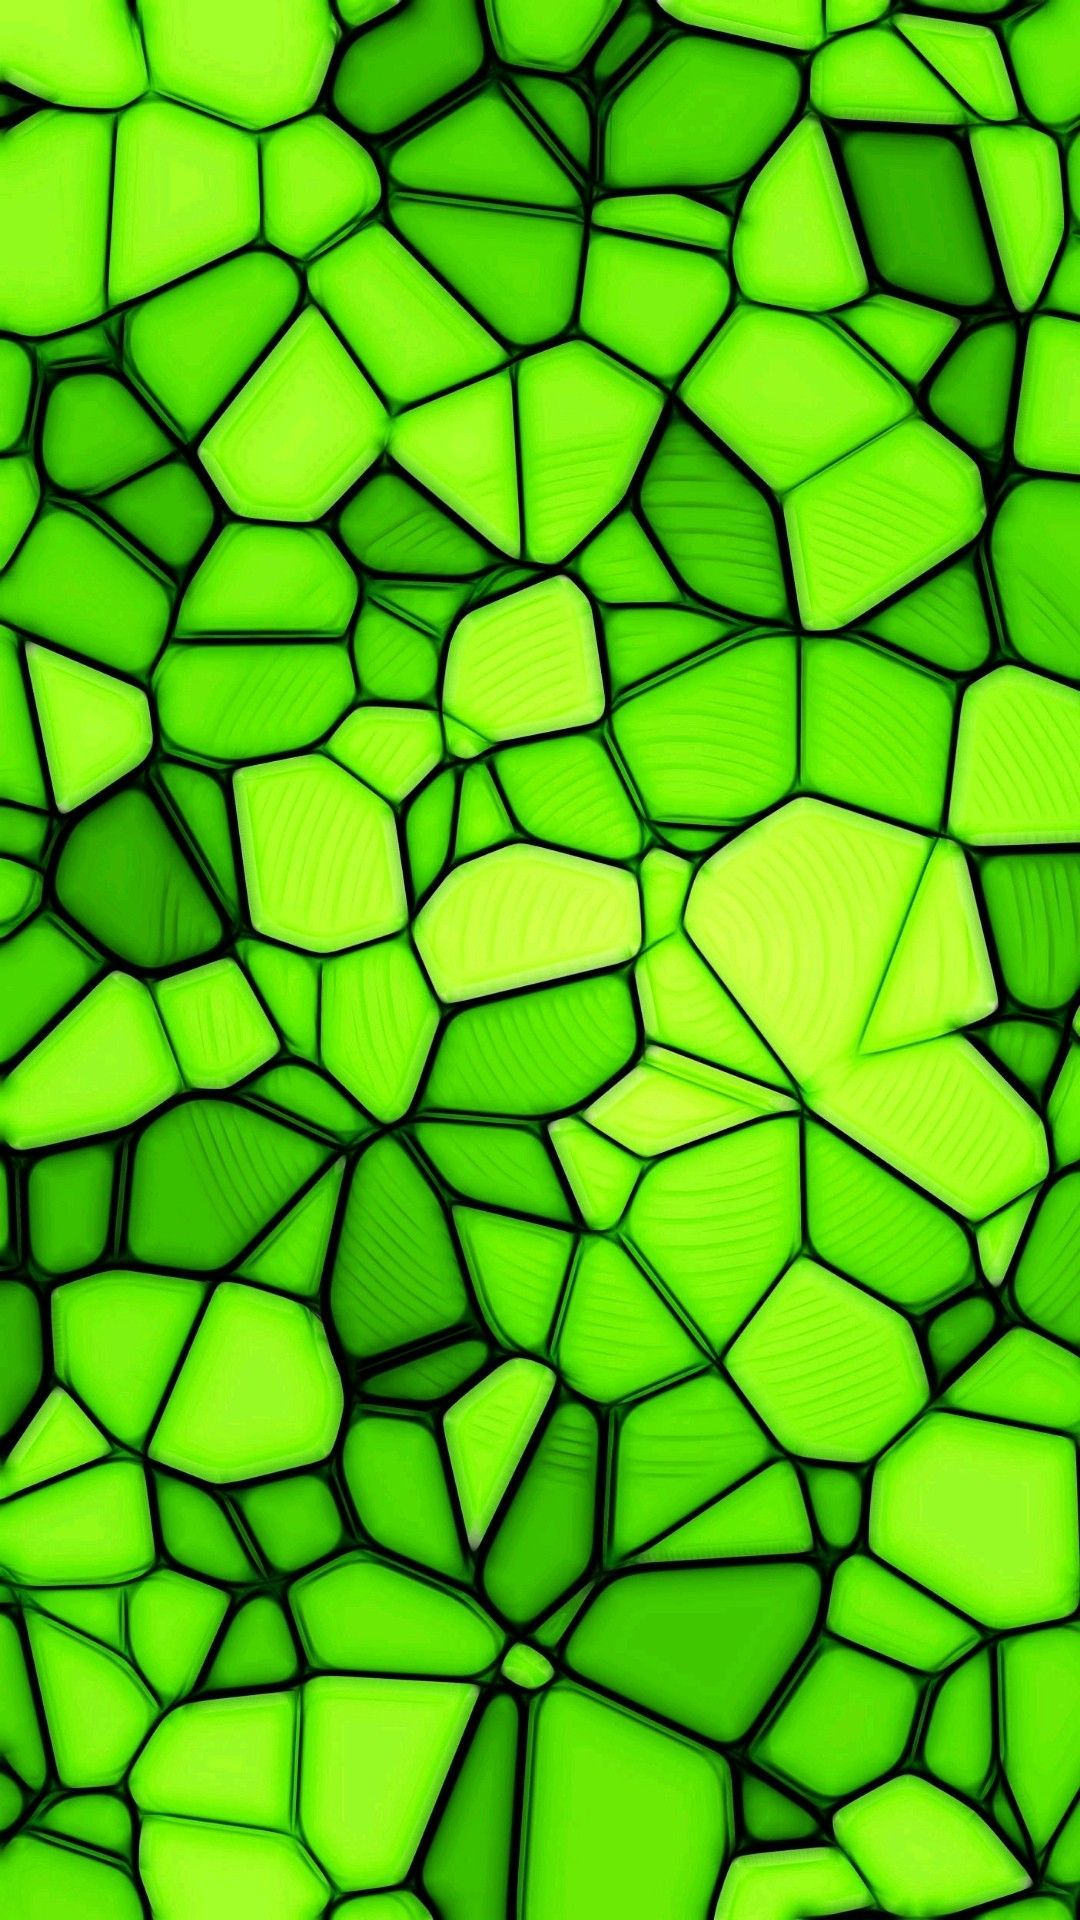 Hd Green Wallpaper For Mobile With Abstract Stone Art Surface Hd Wallpapers Wallpapers Download High Resolution Wallpapers Green Wallpaper Special Wallpaper Mobile Wallpaper